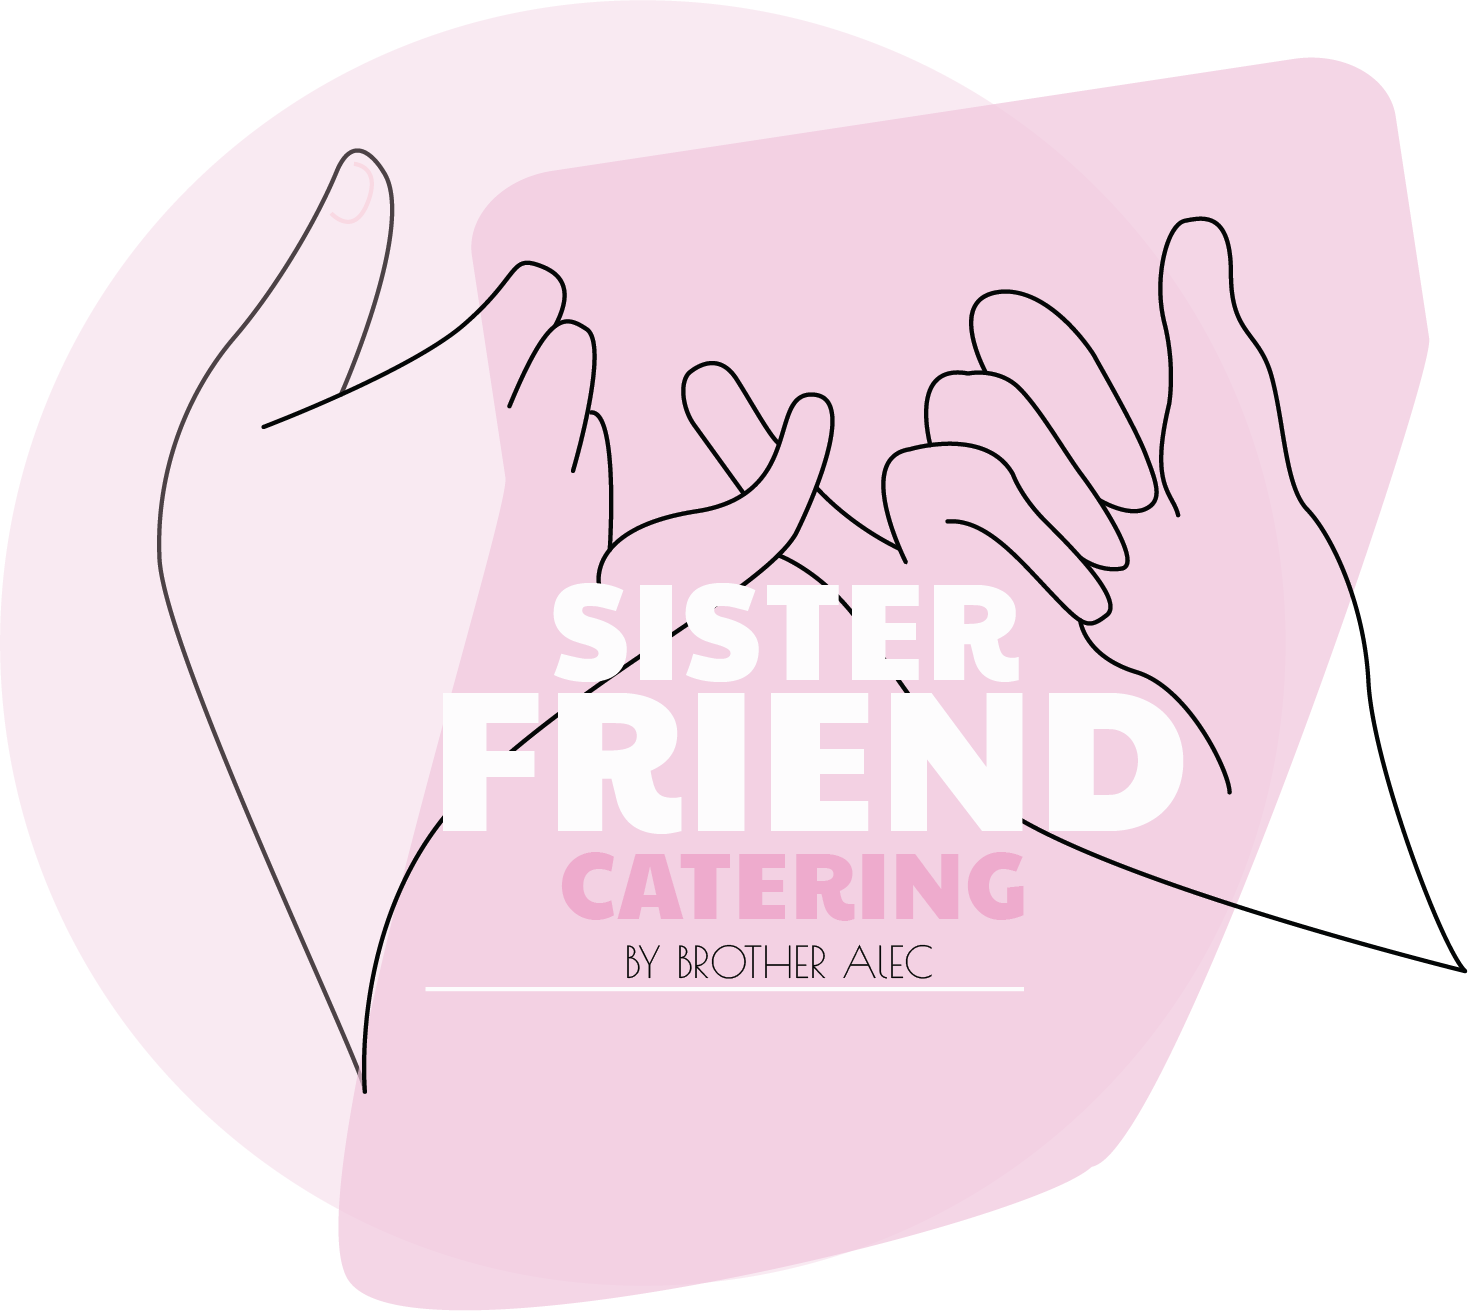 sister friend catering